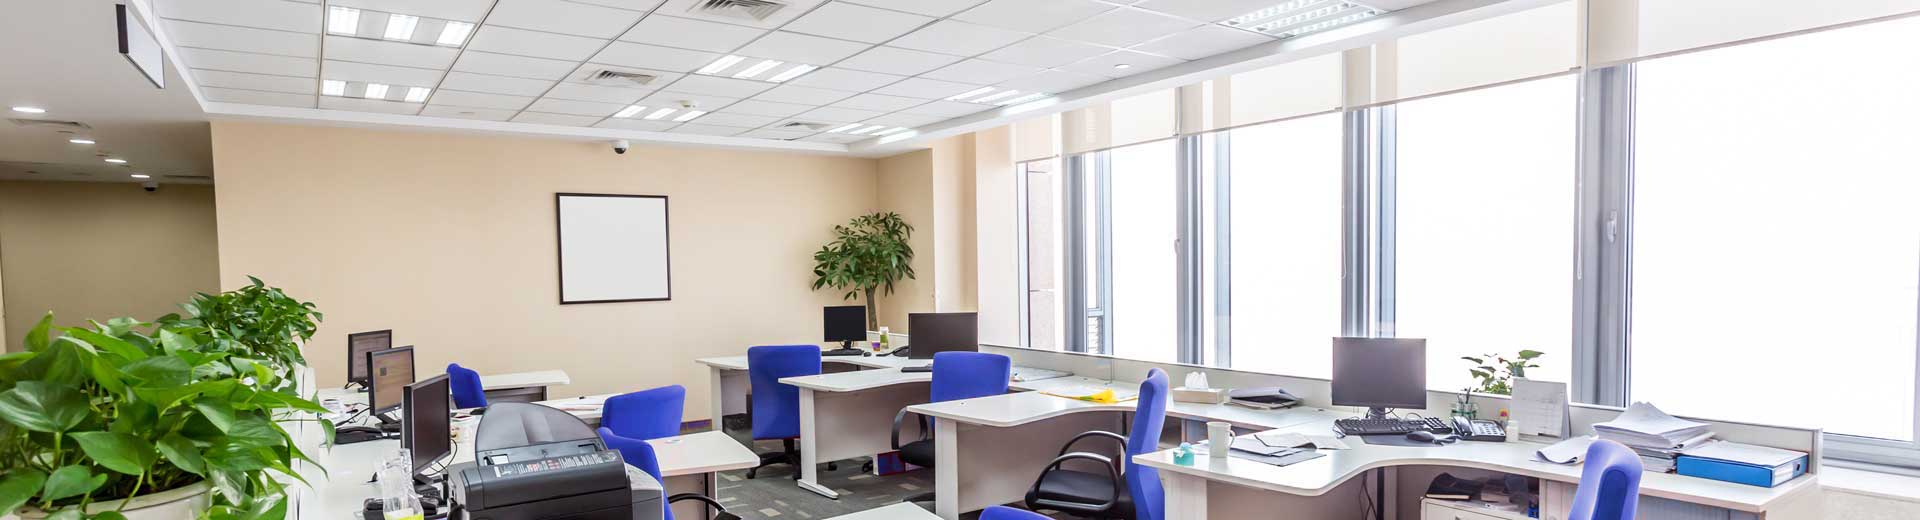 Range of Surface LED Office lights